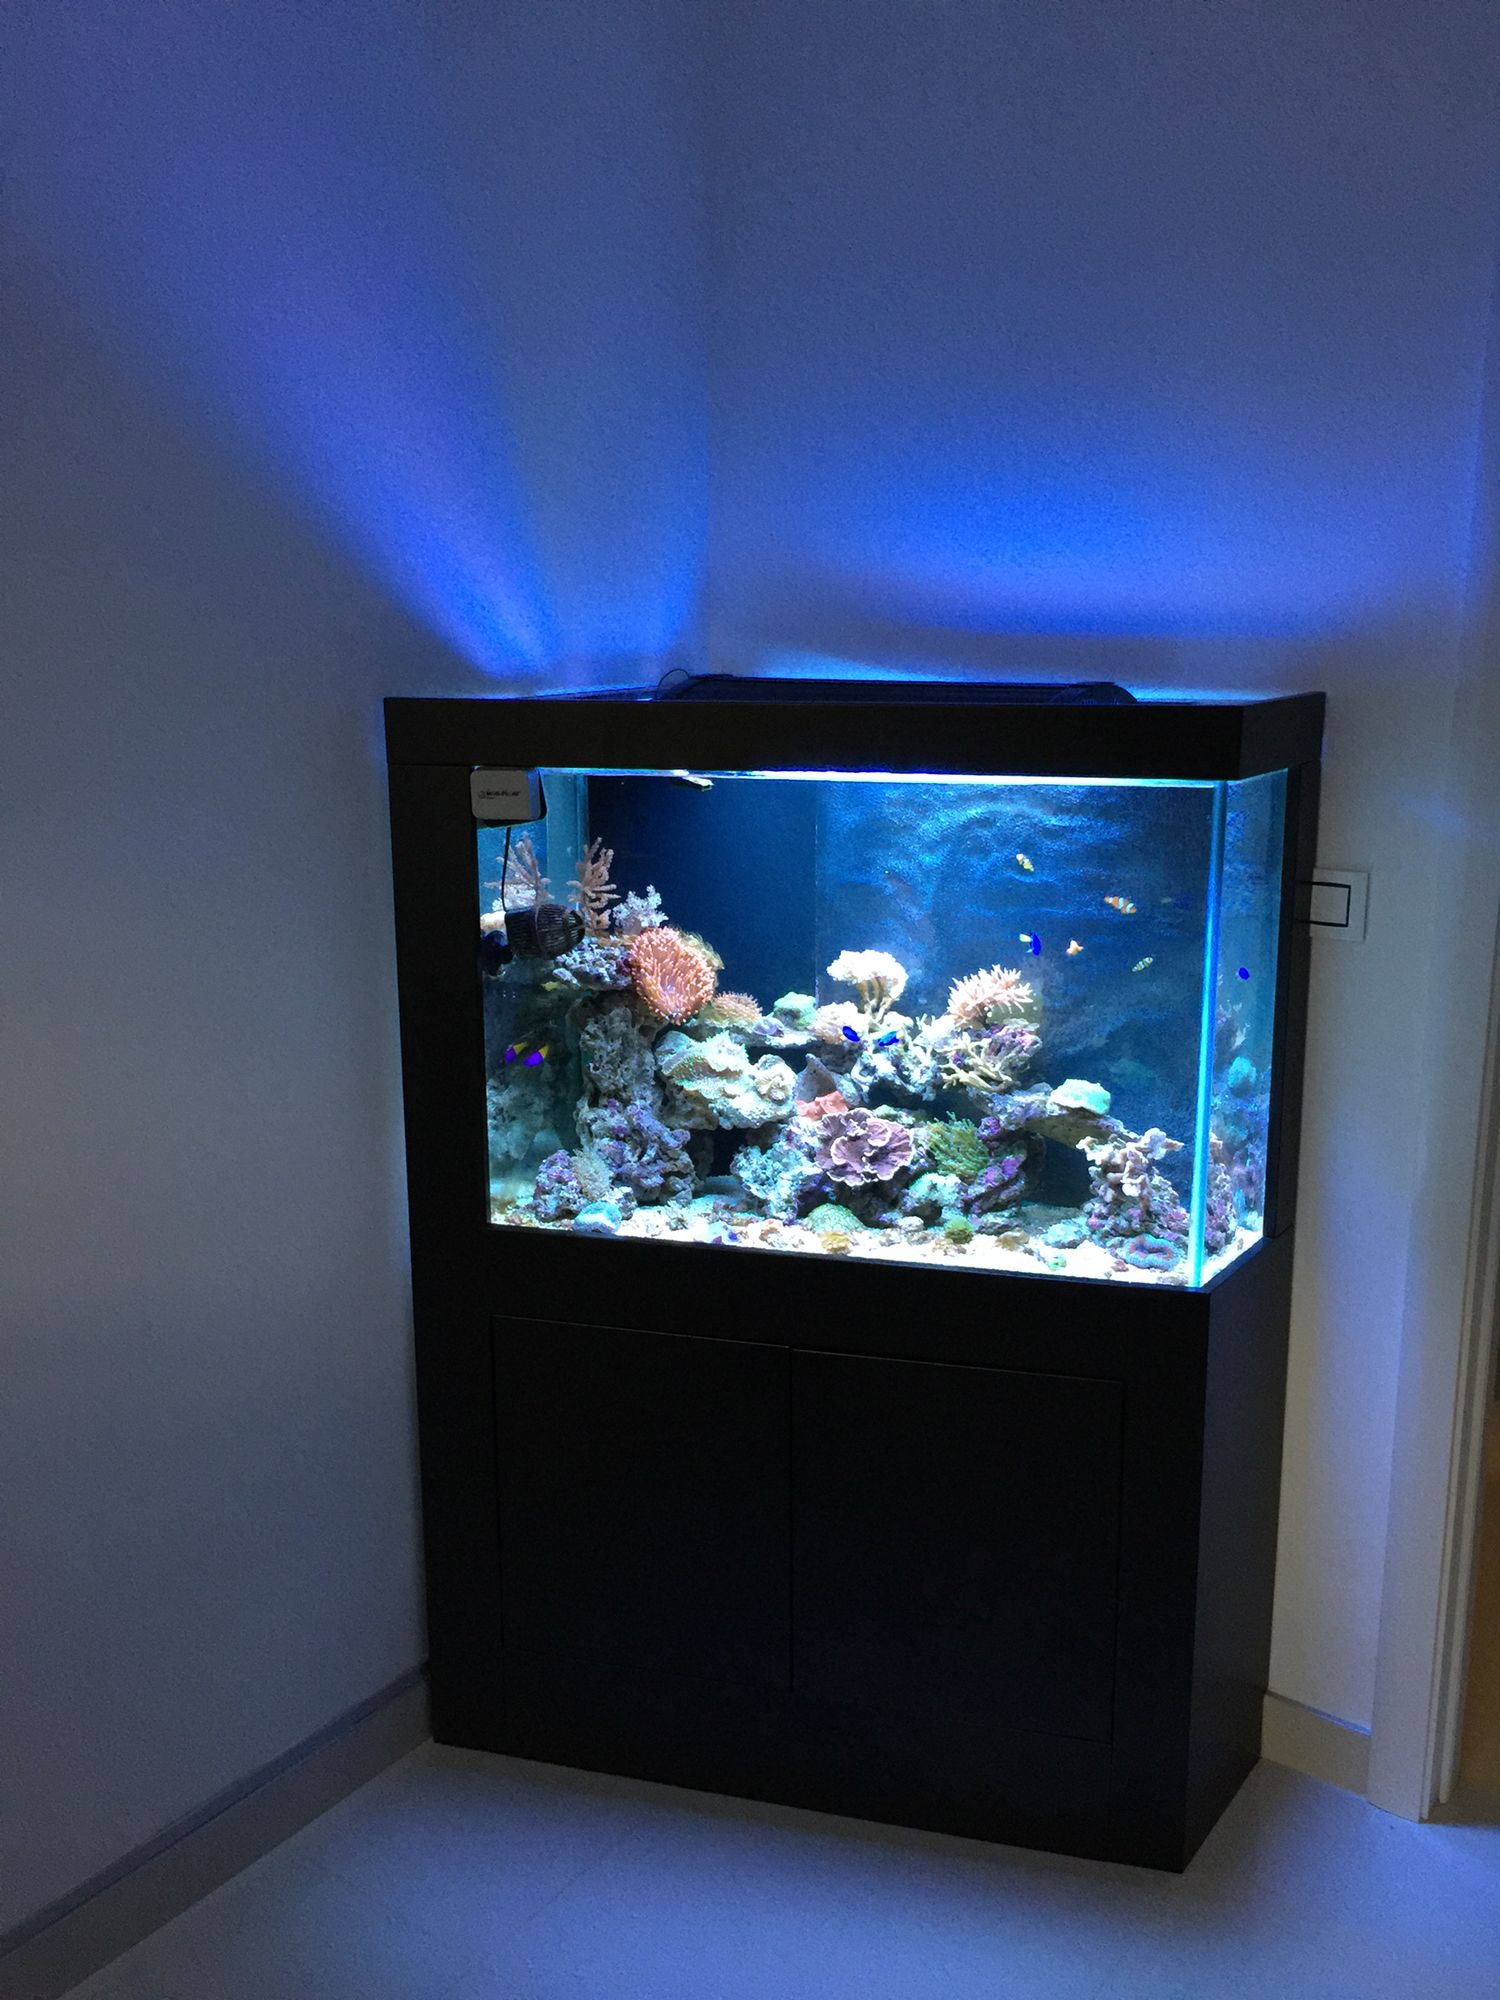 Check out this great custom build from baby tuna on Nano Reef They